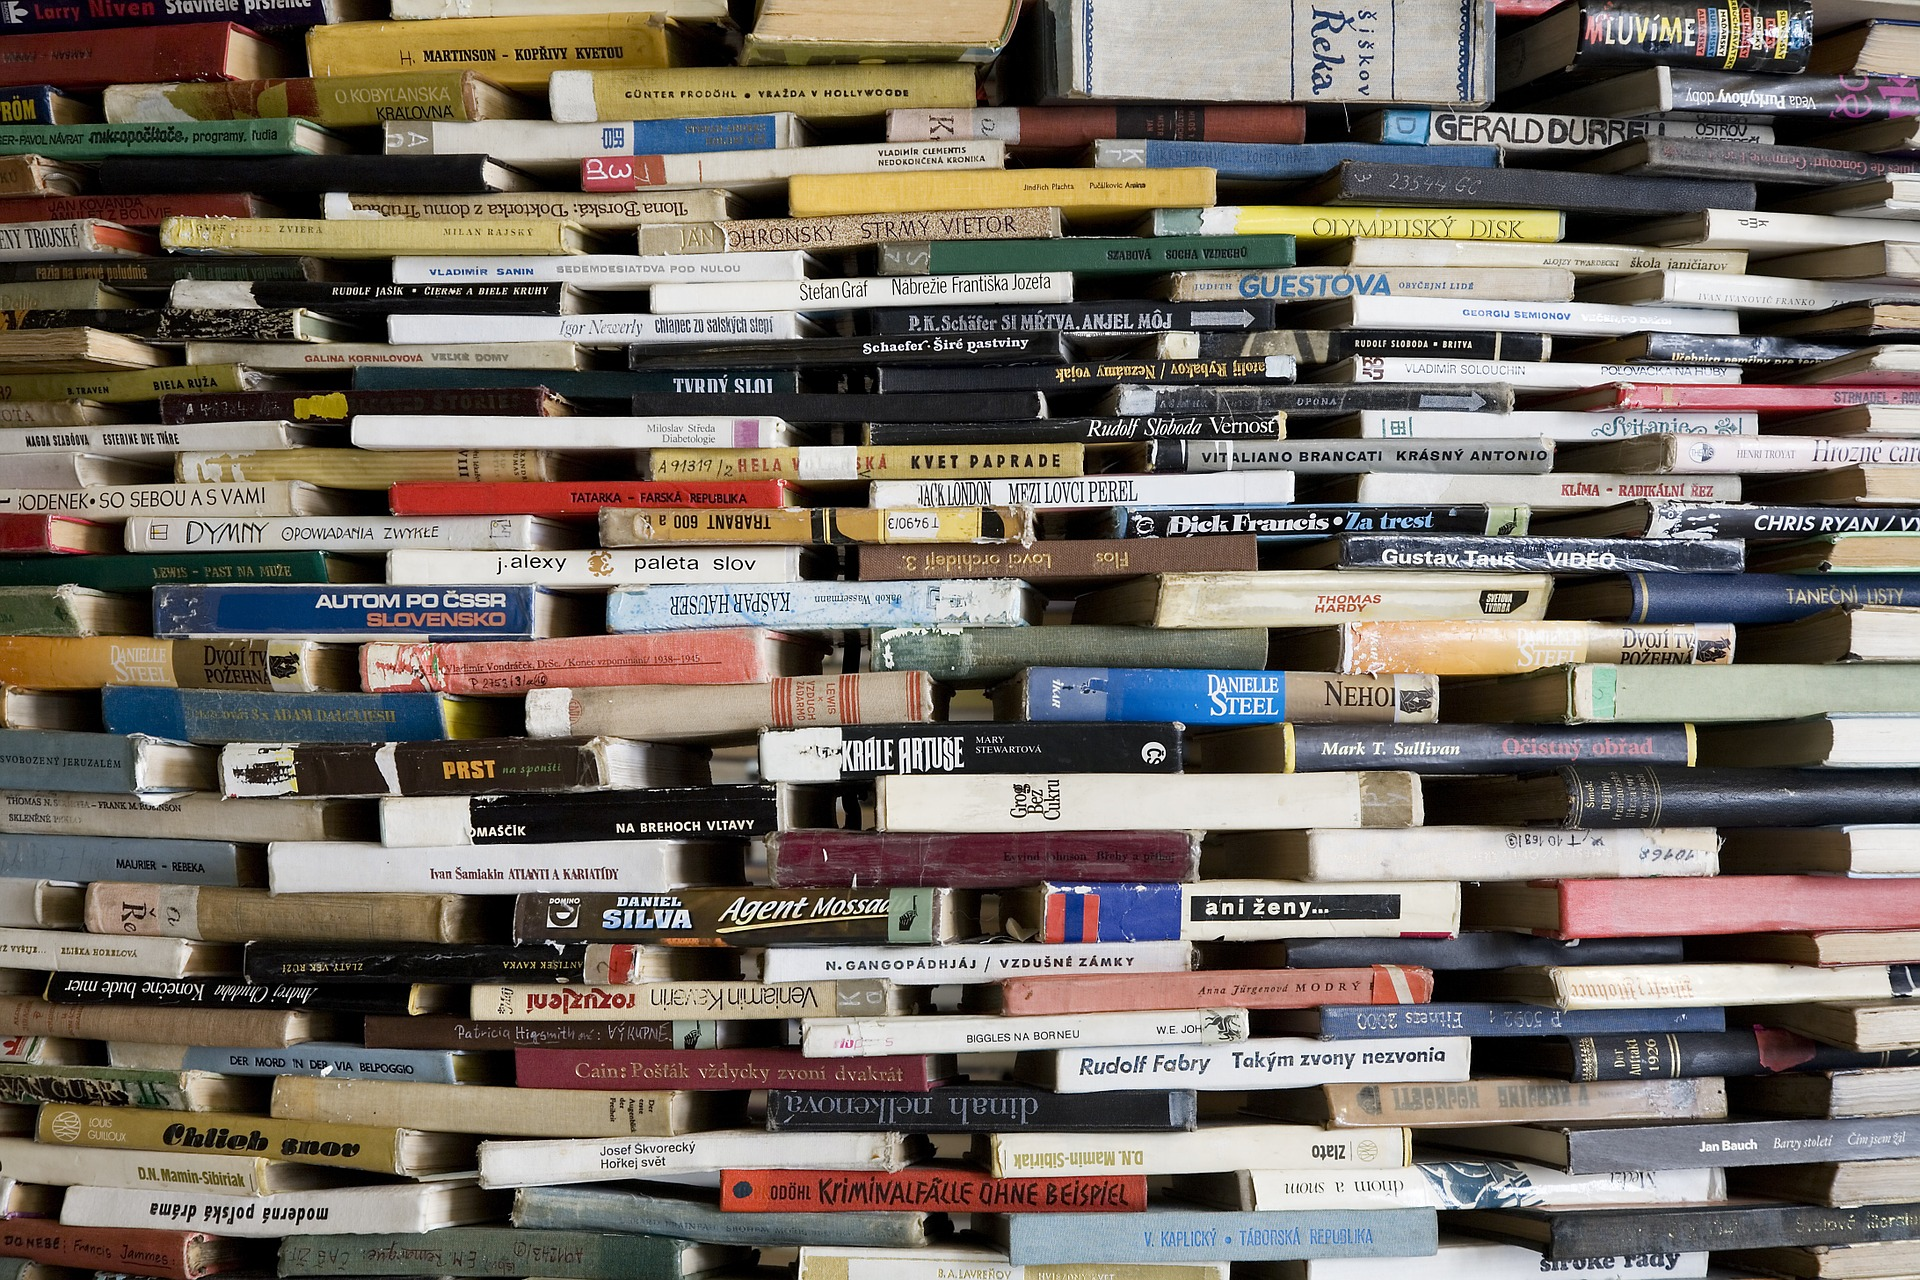 A huge stack of many different kinds of books